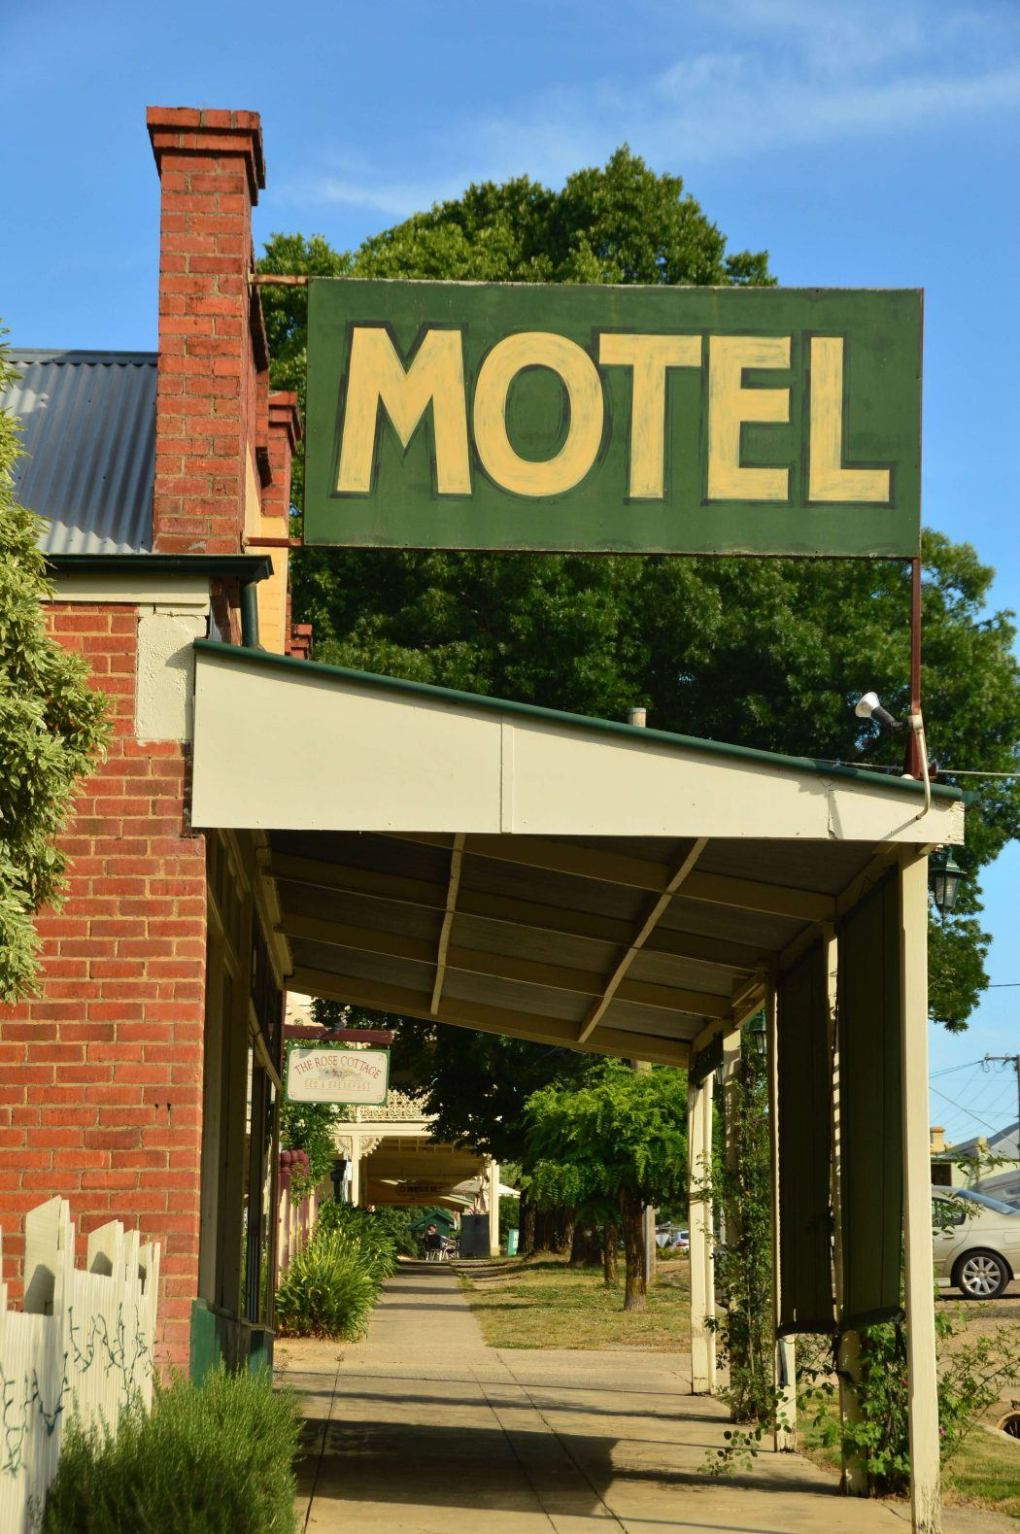 motel sign in small australian country town